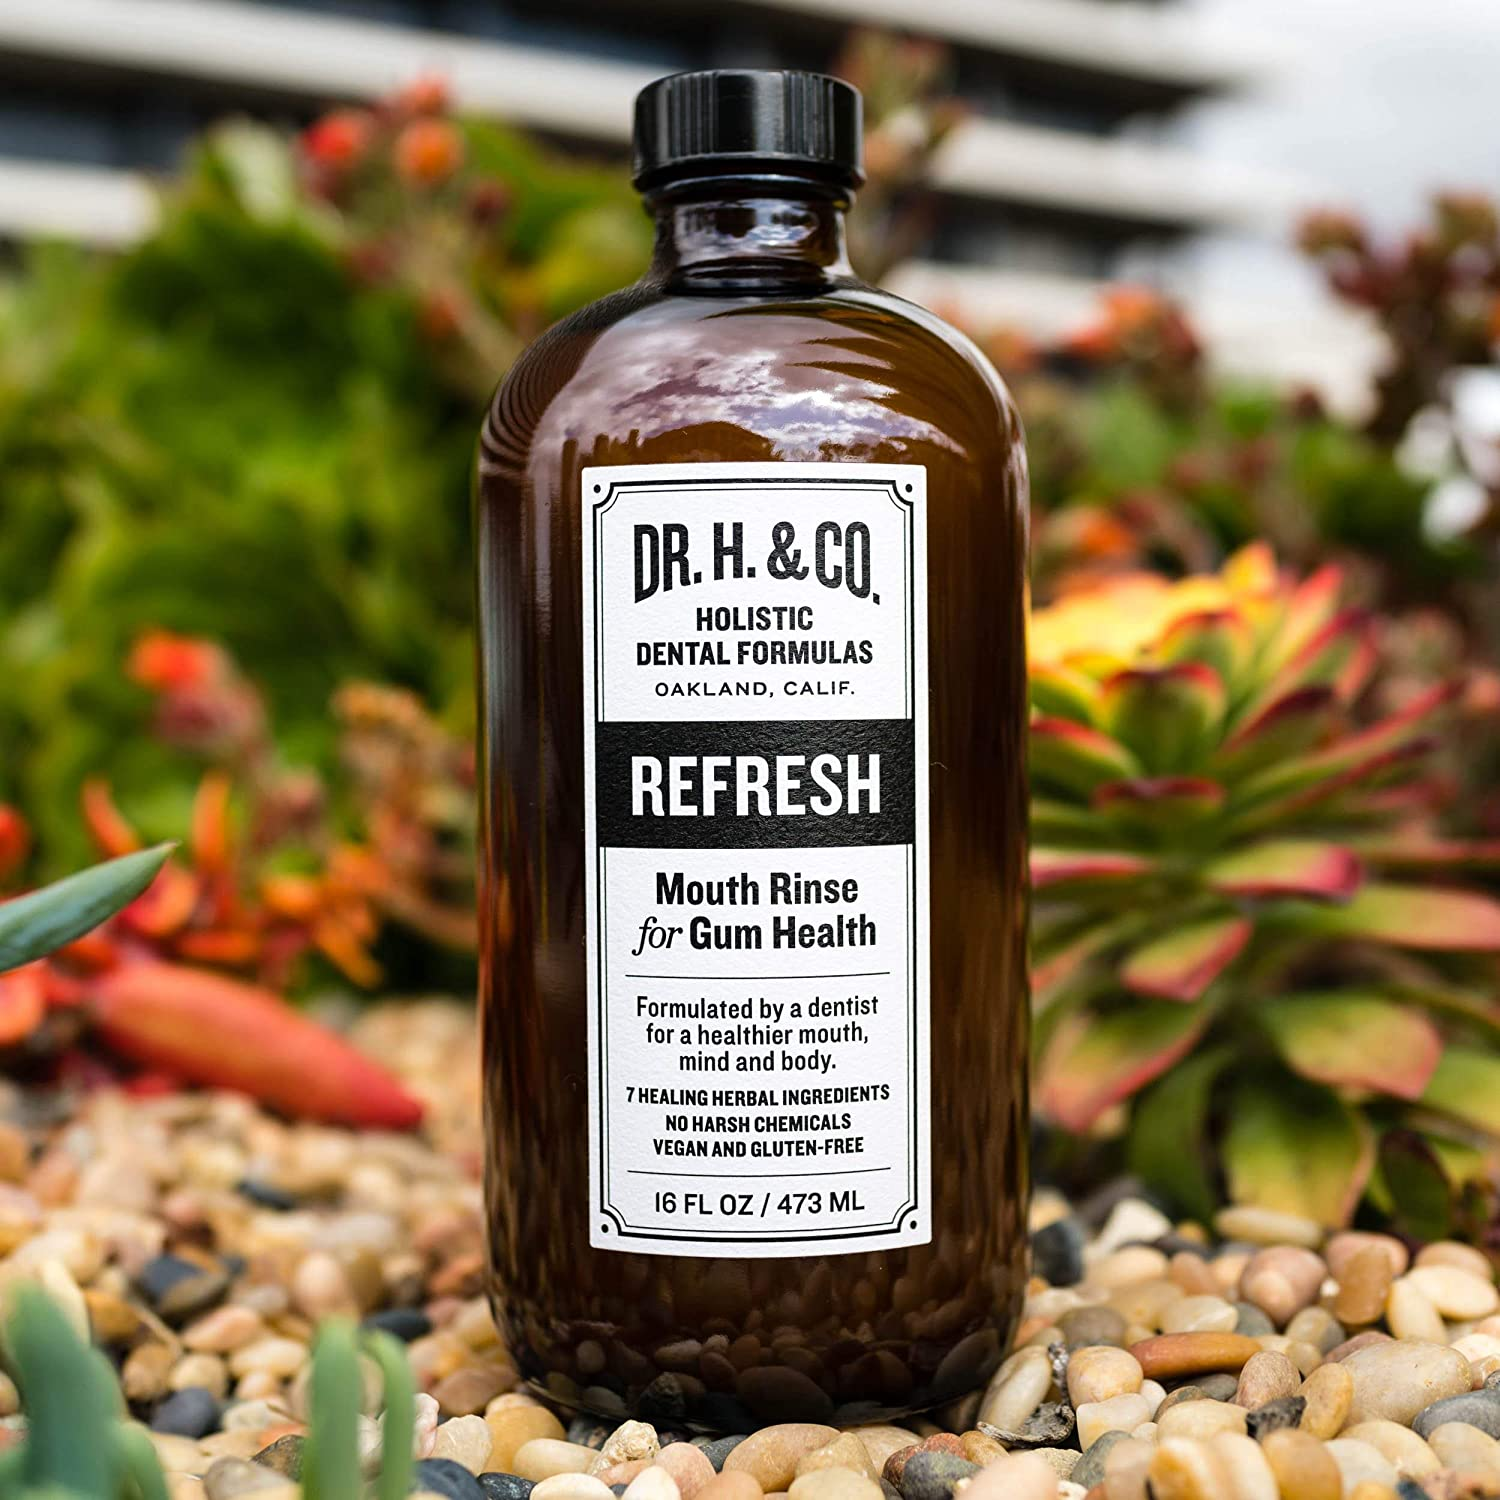 Dr  H  & Co  Dentist Formulated Refresh Mouthwash - All Natural Herbal and  Holistic Mouth Rinse for